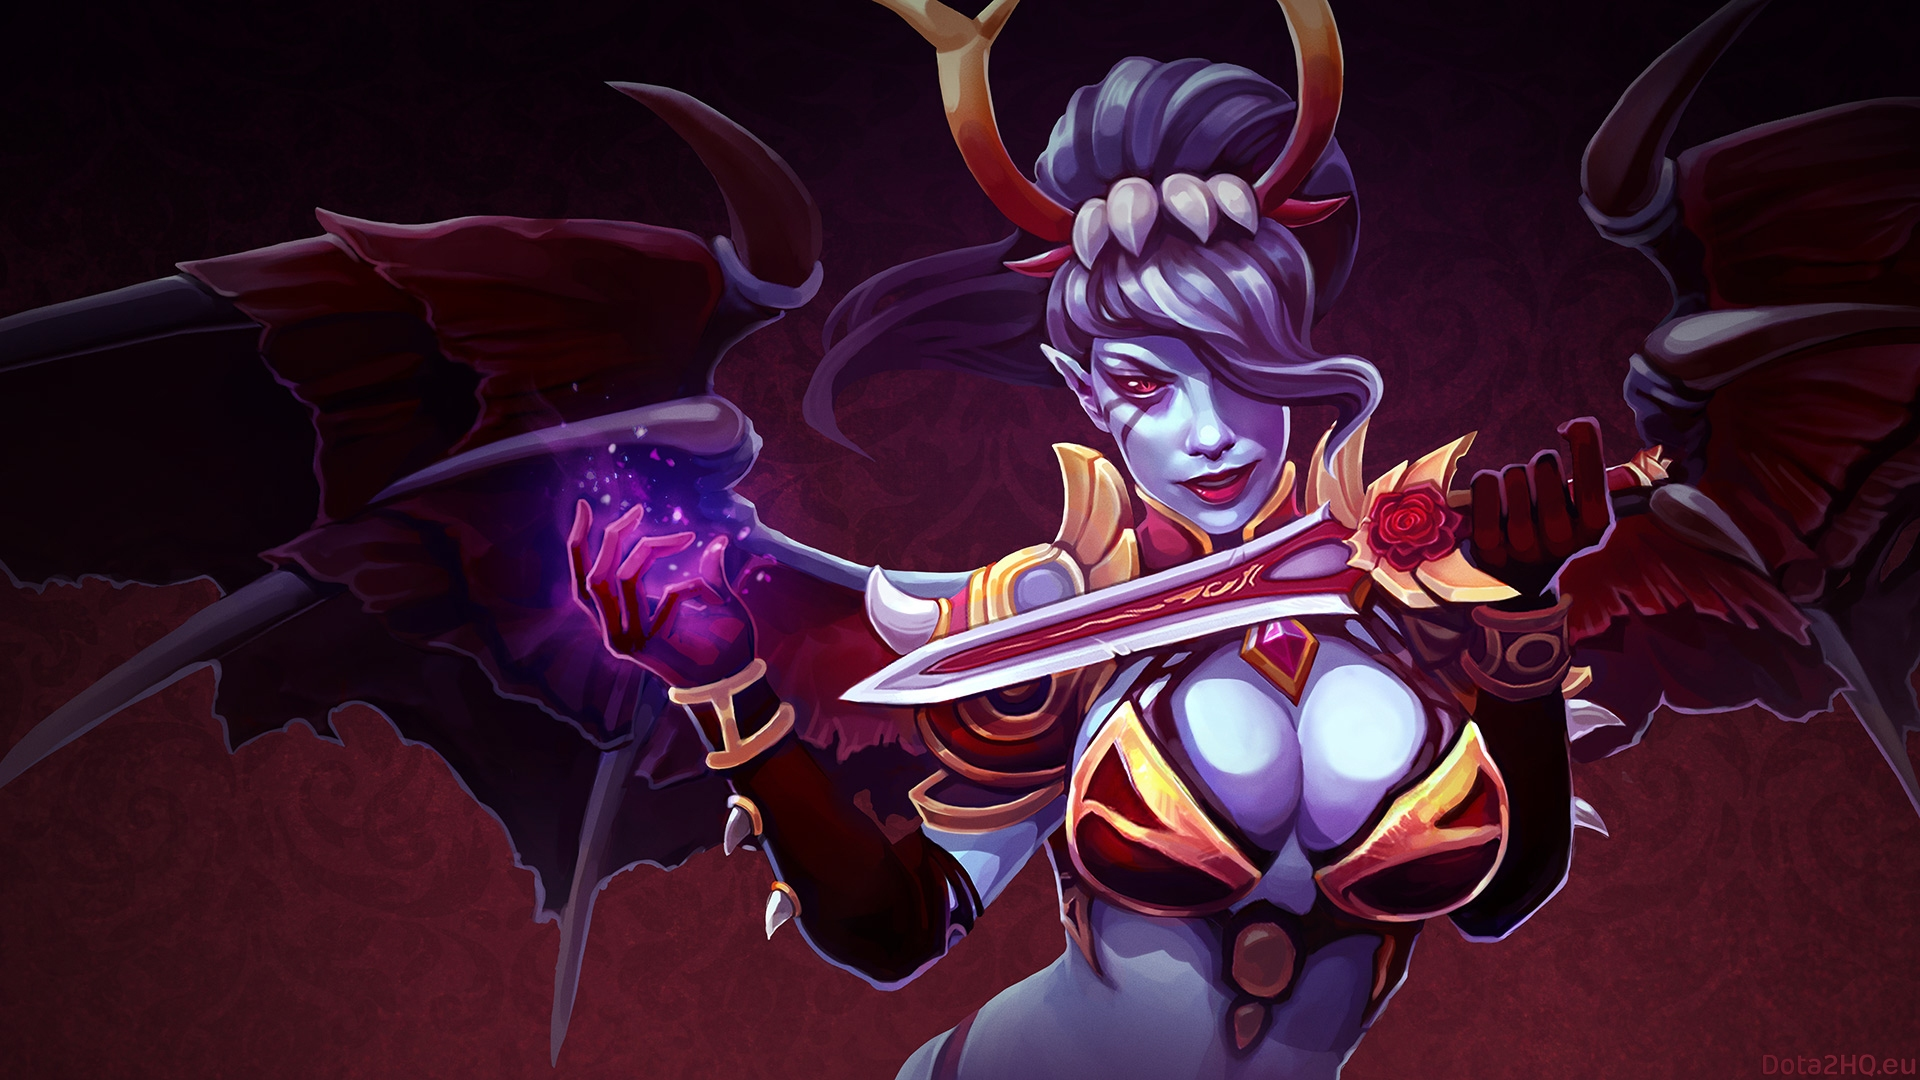 download dota 2 queen of pain wallpapers desktop background is cool